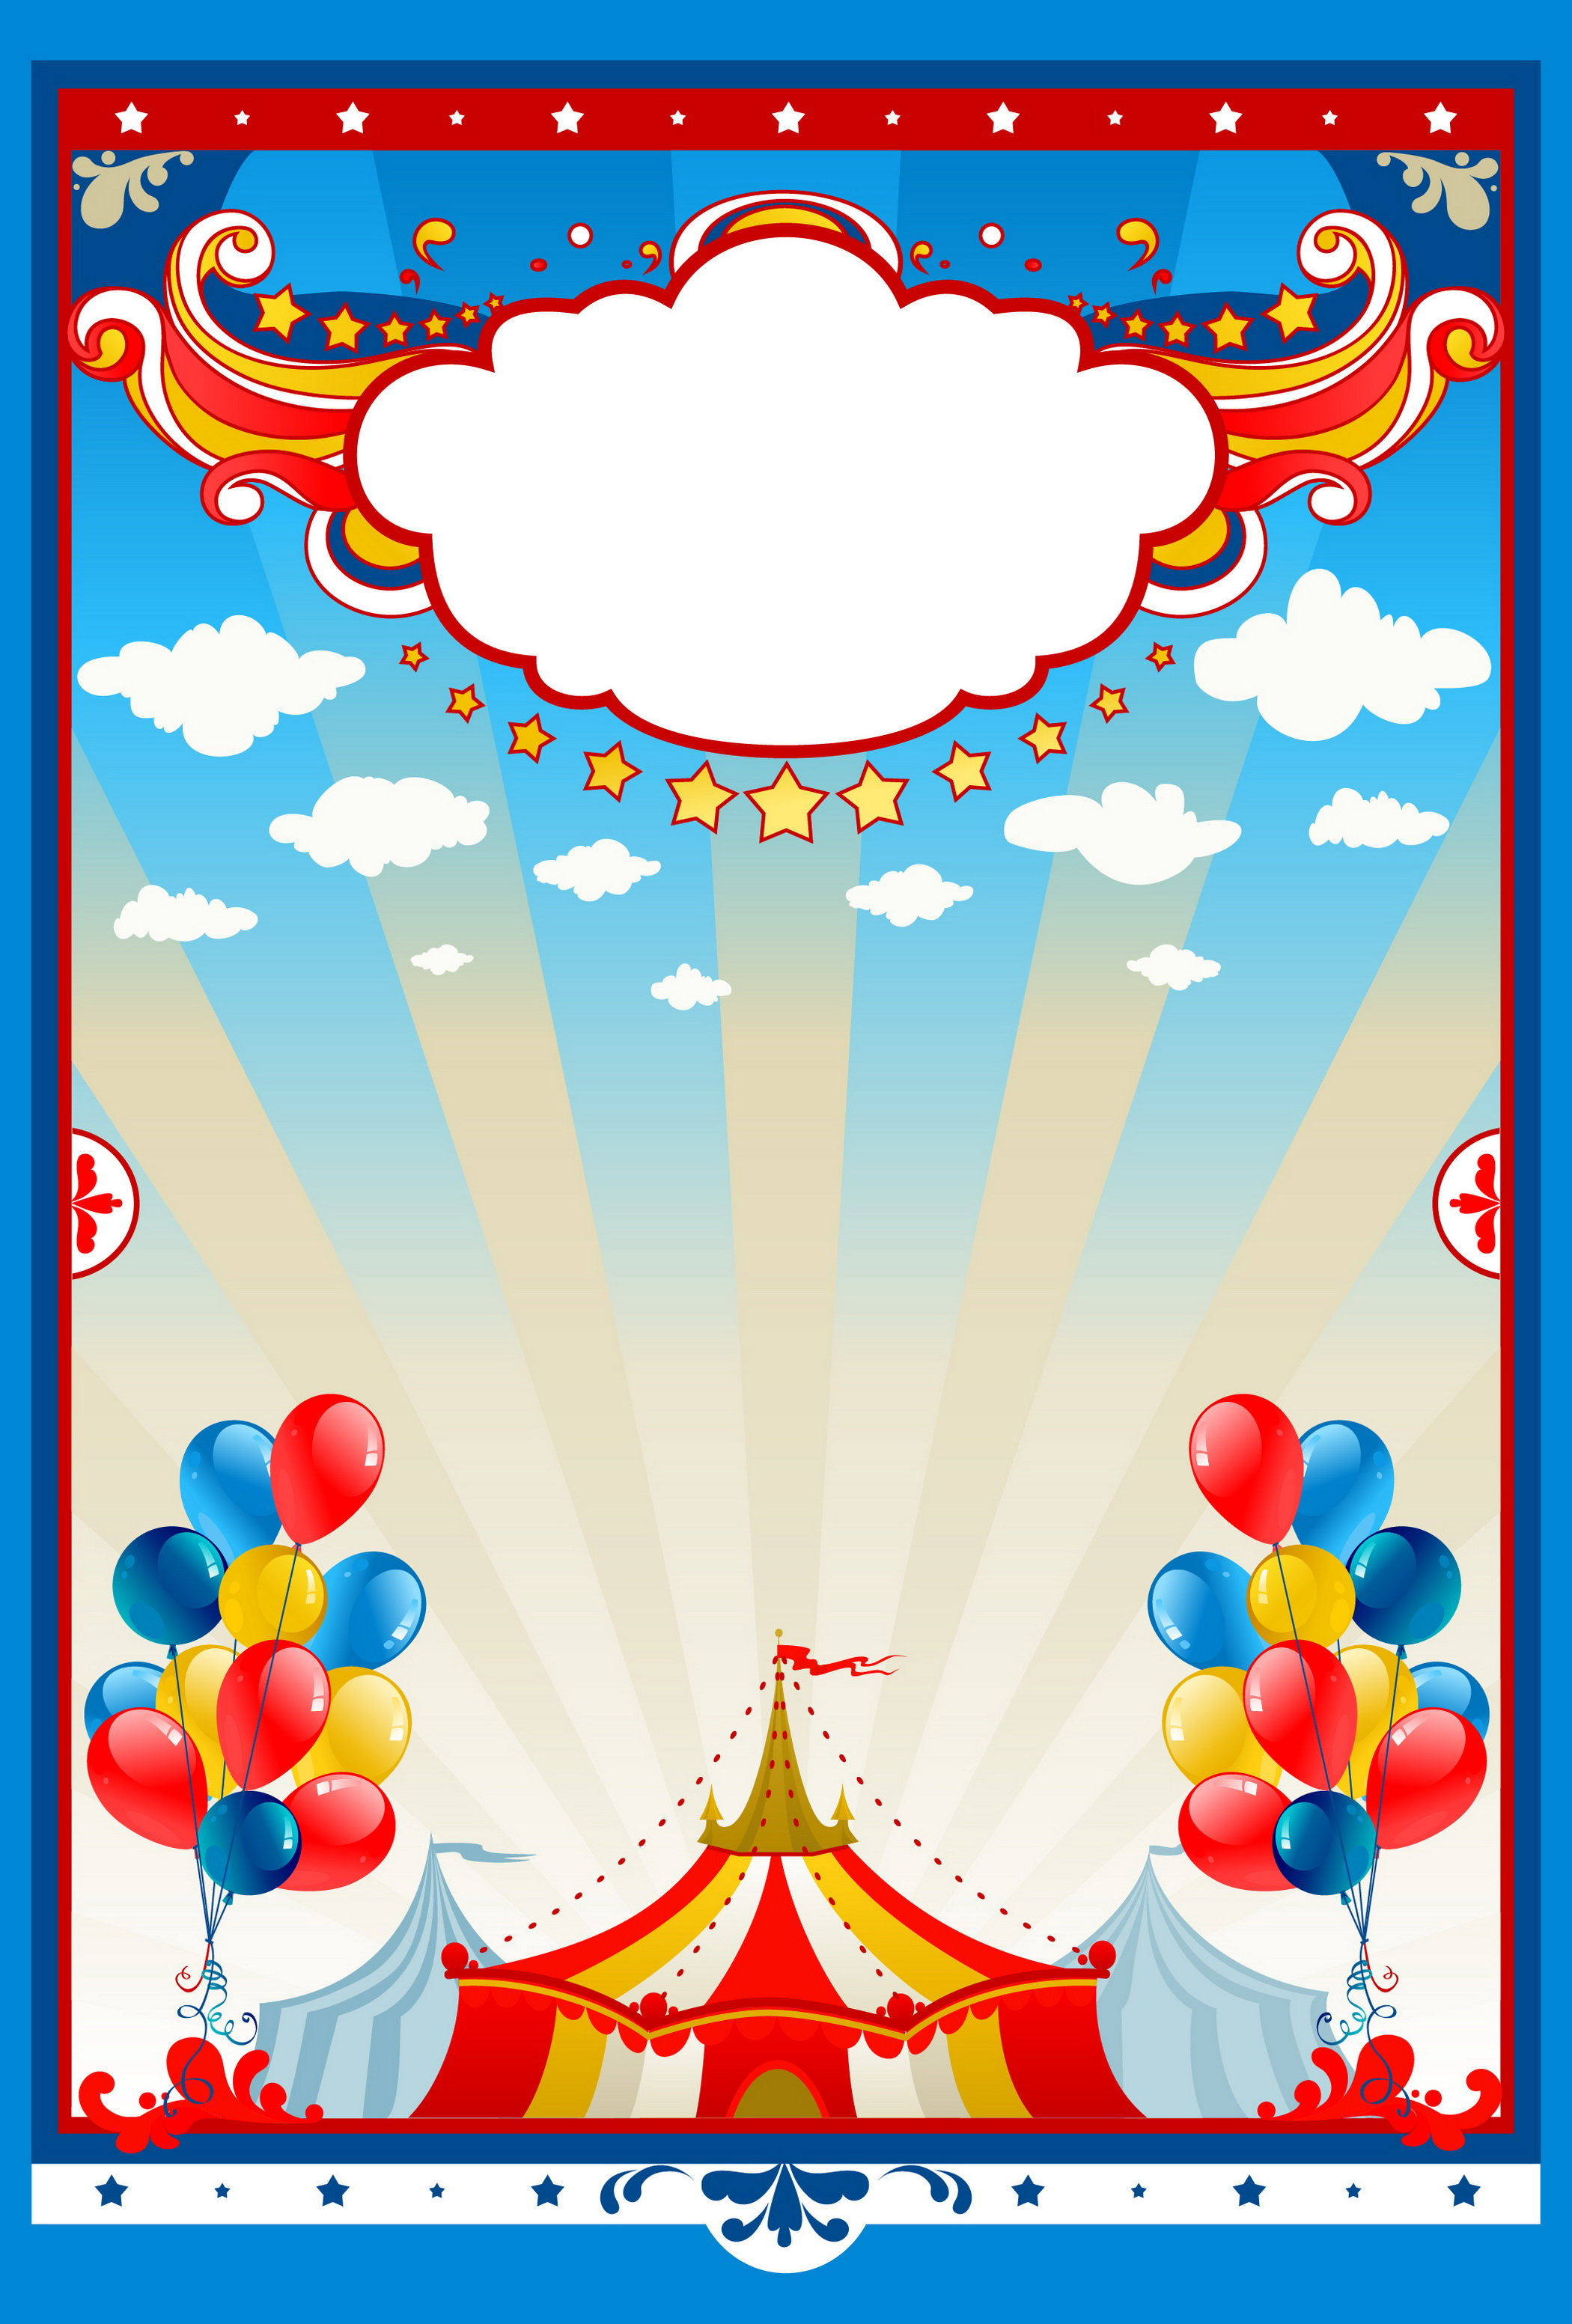 Circus Tent Circus Tent Shed Background Image For Free